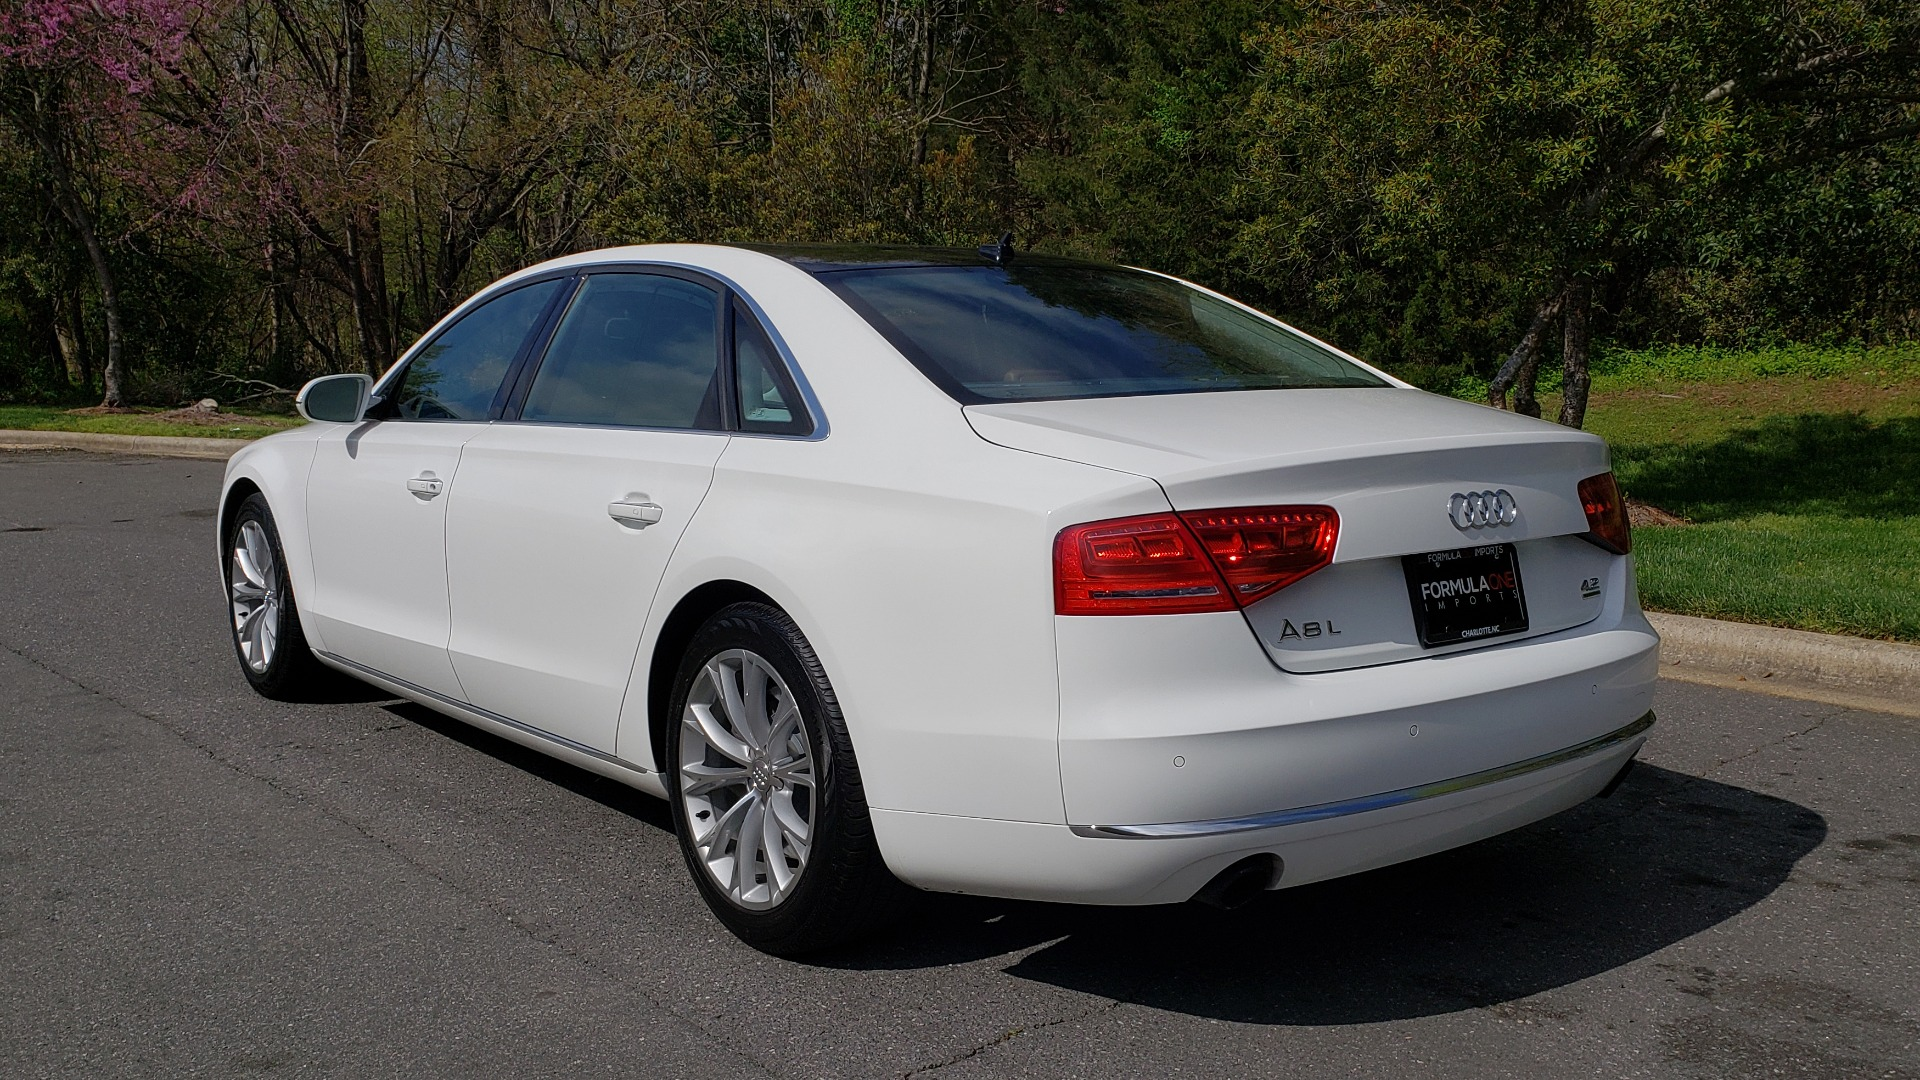 Used 2011 Audi A8 L QUATTRO / NAV / PANO-ROOF / REARVIEW / BSM / B&O SND for sale Sold at Formula Imports in Charlotte NC 28227 3